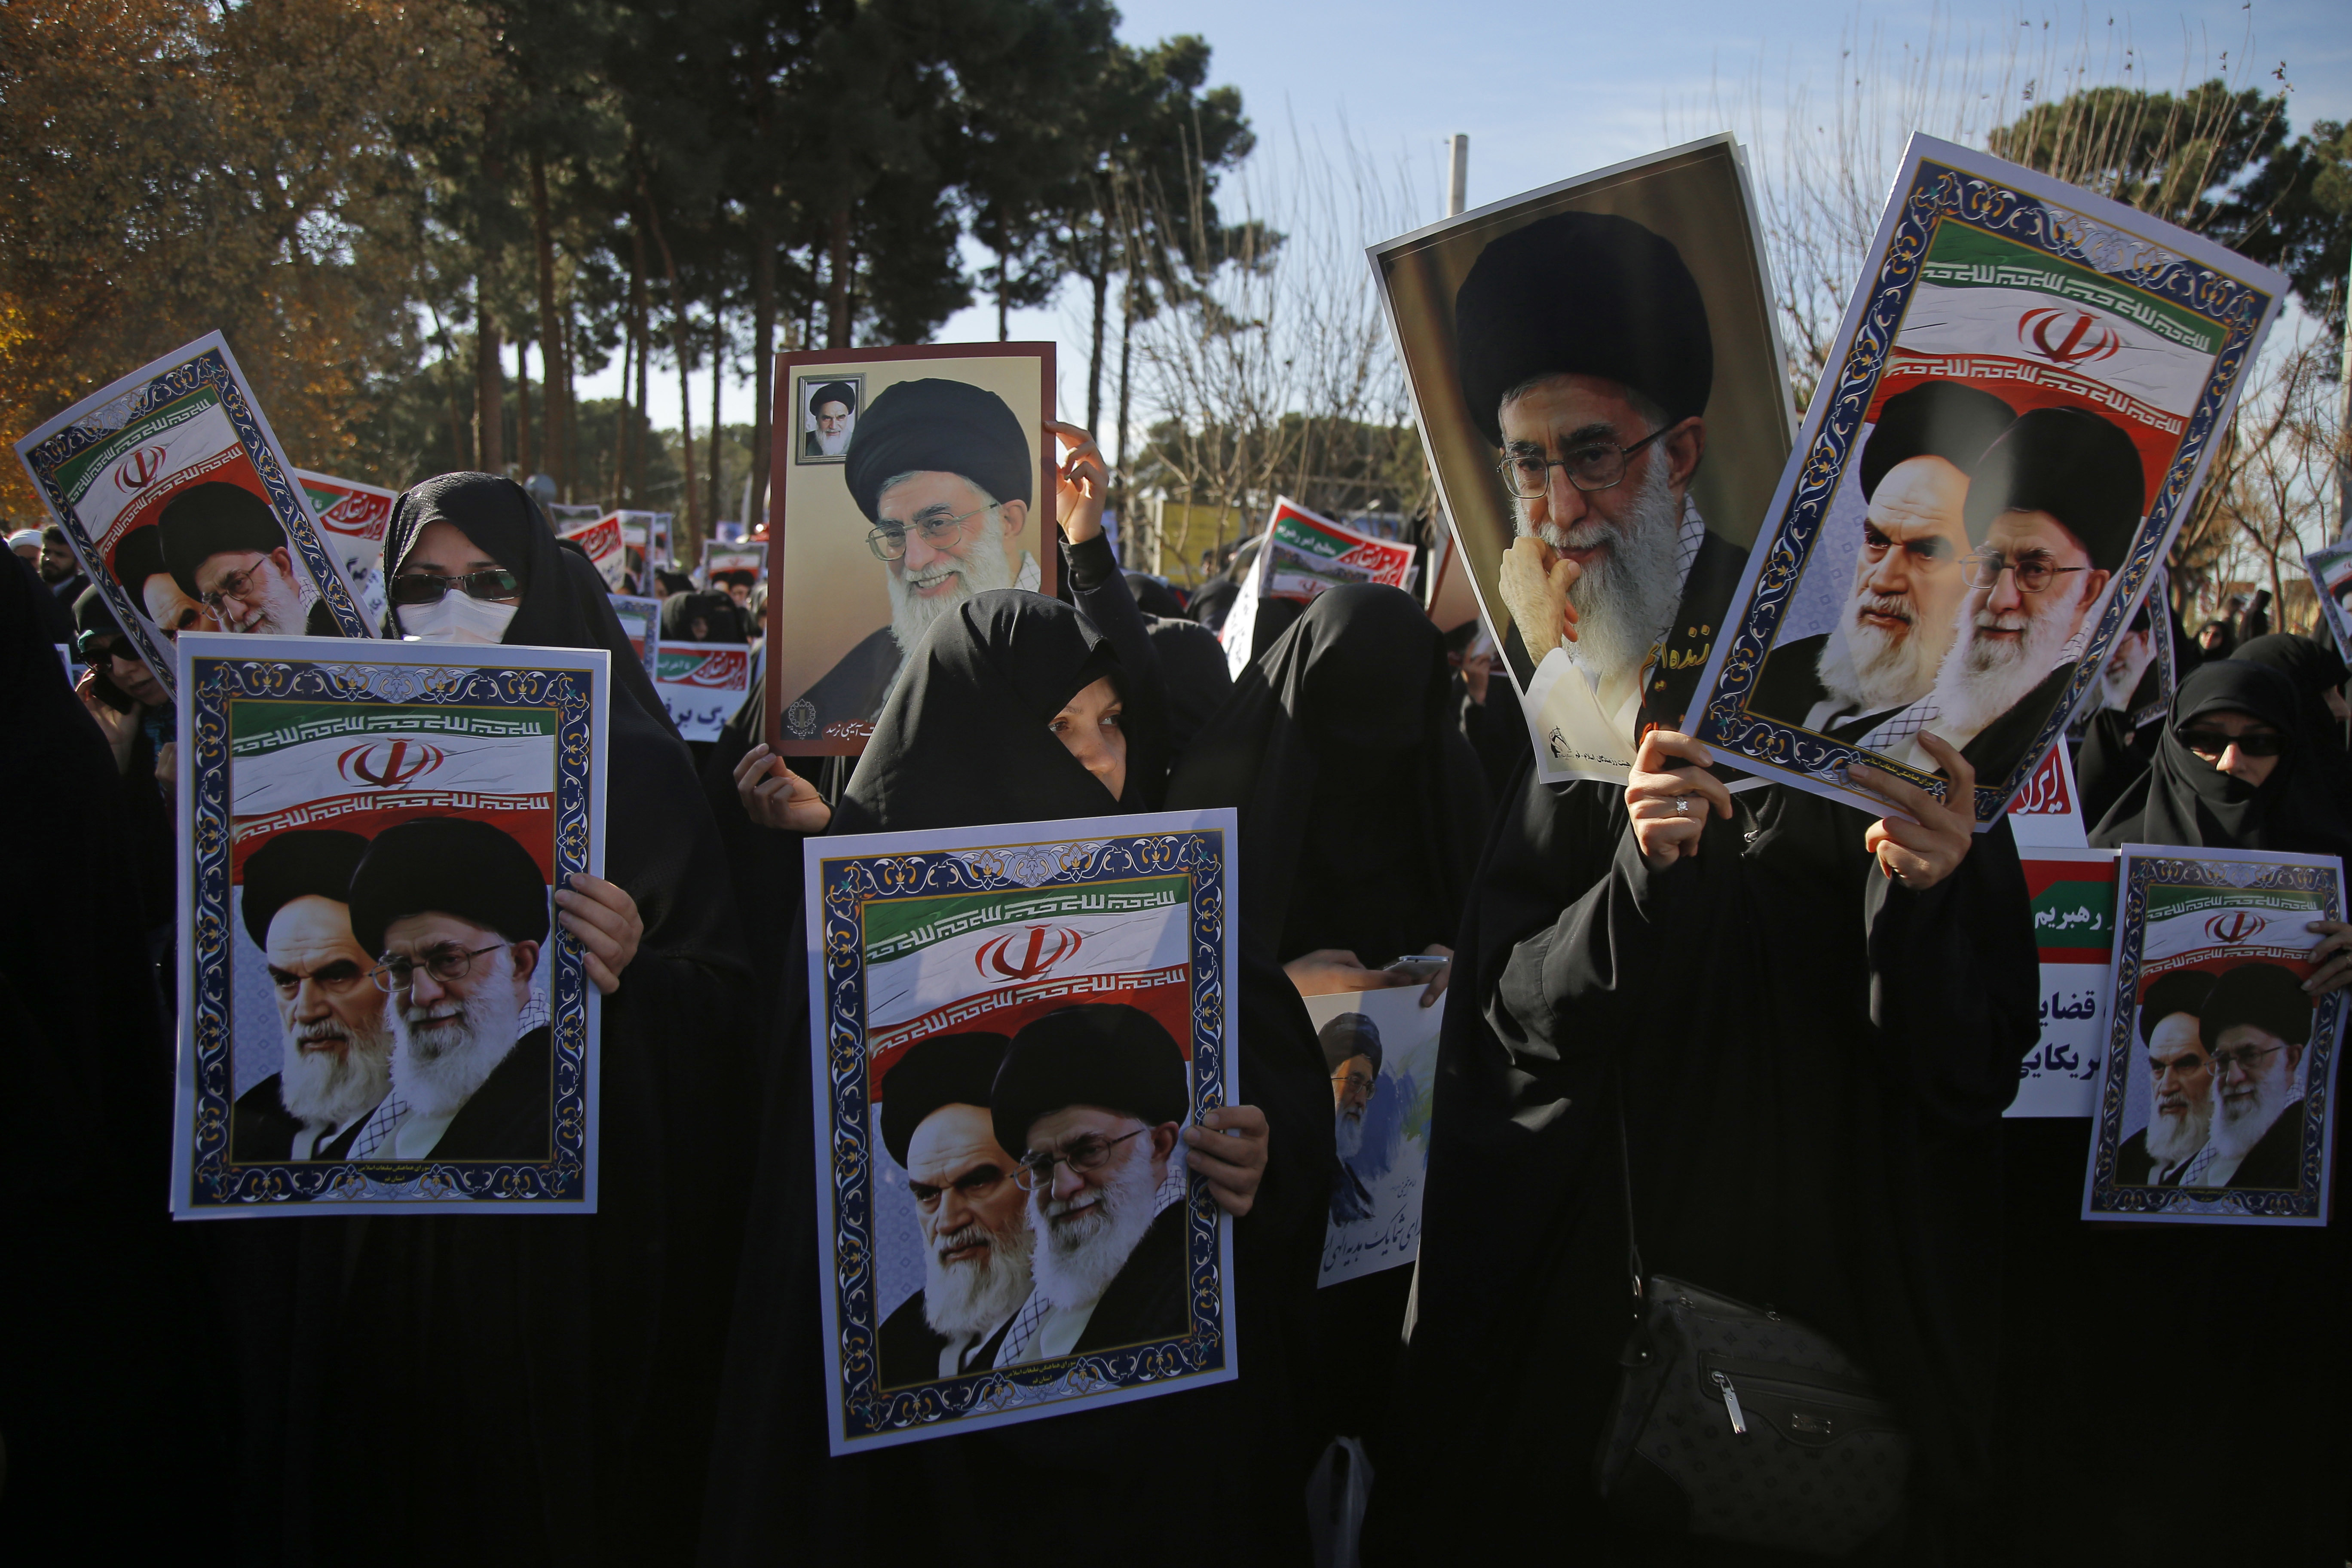 In this photo provided by Tasnim News Agency, women hold posters showing portraits of late Iranian revolutionary founder Ayatollah Khomeini, and Supreme Leader Ayatollah Ali Khamenei during a pro-government rally in the holy city of Qom, Iran, Jan. 3...